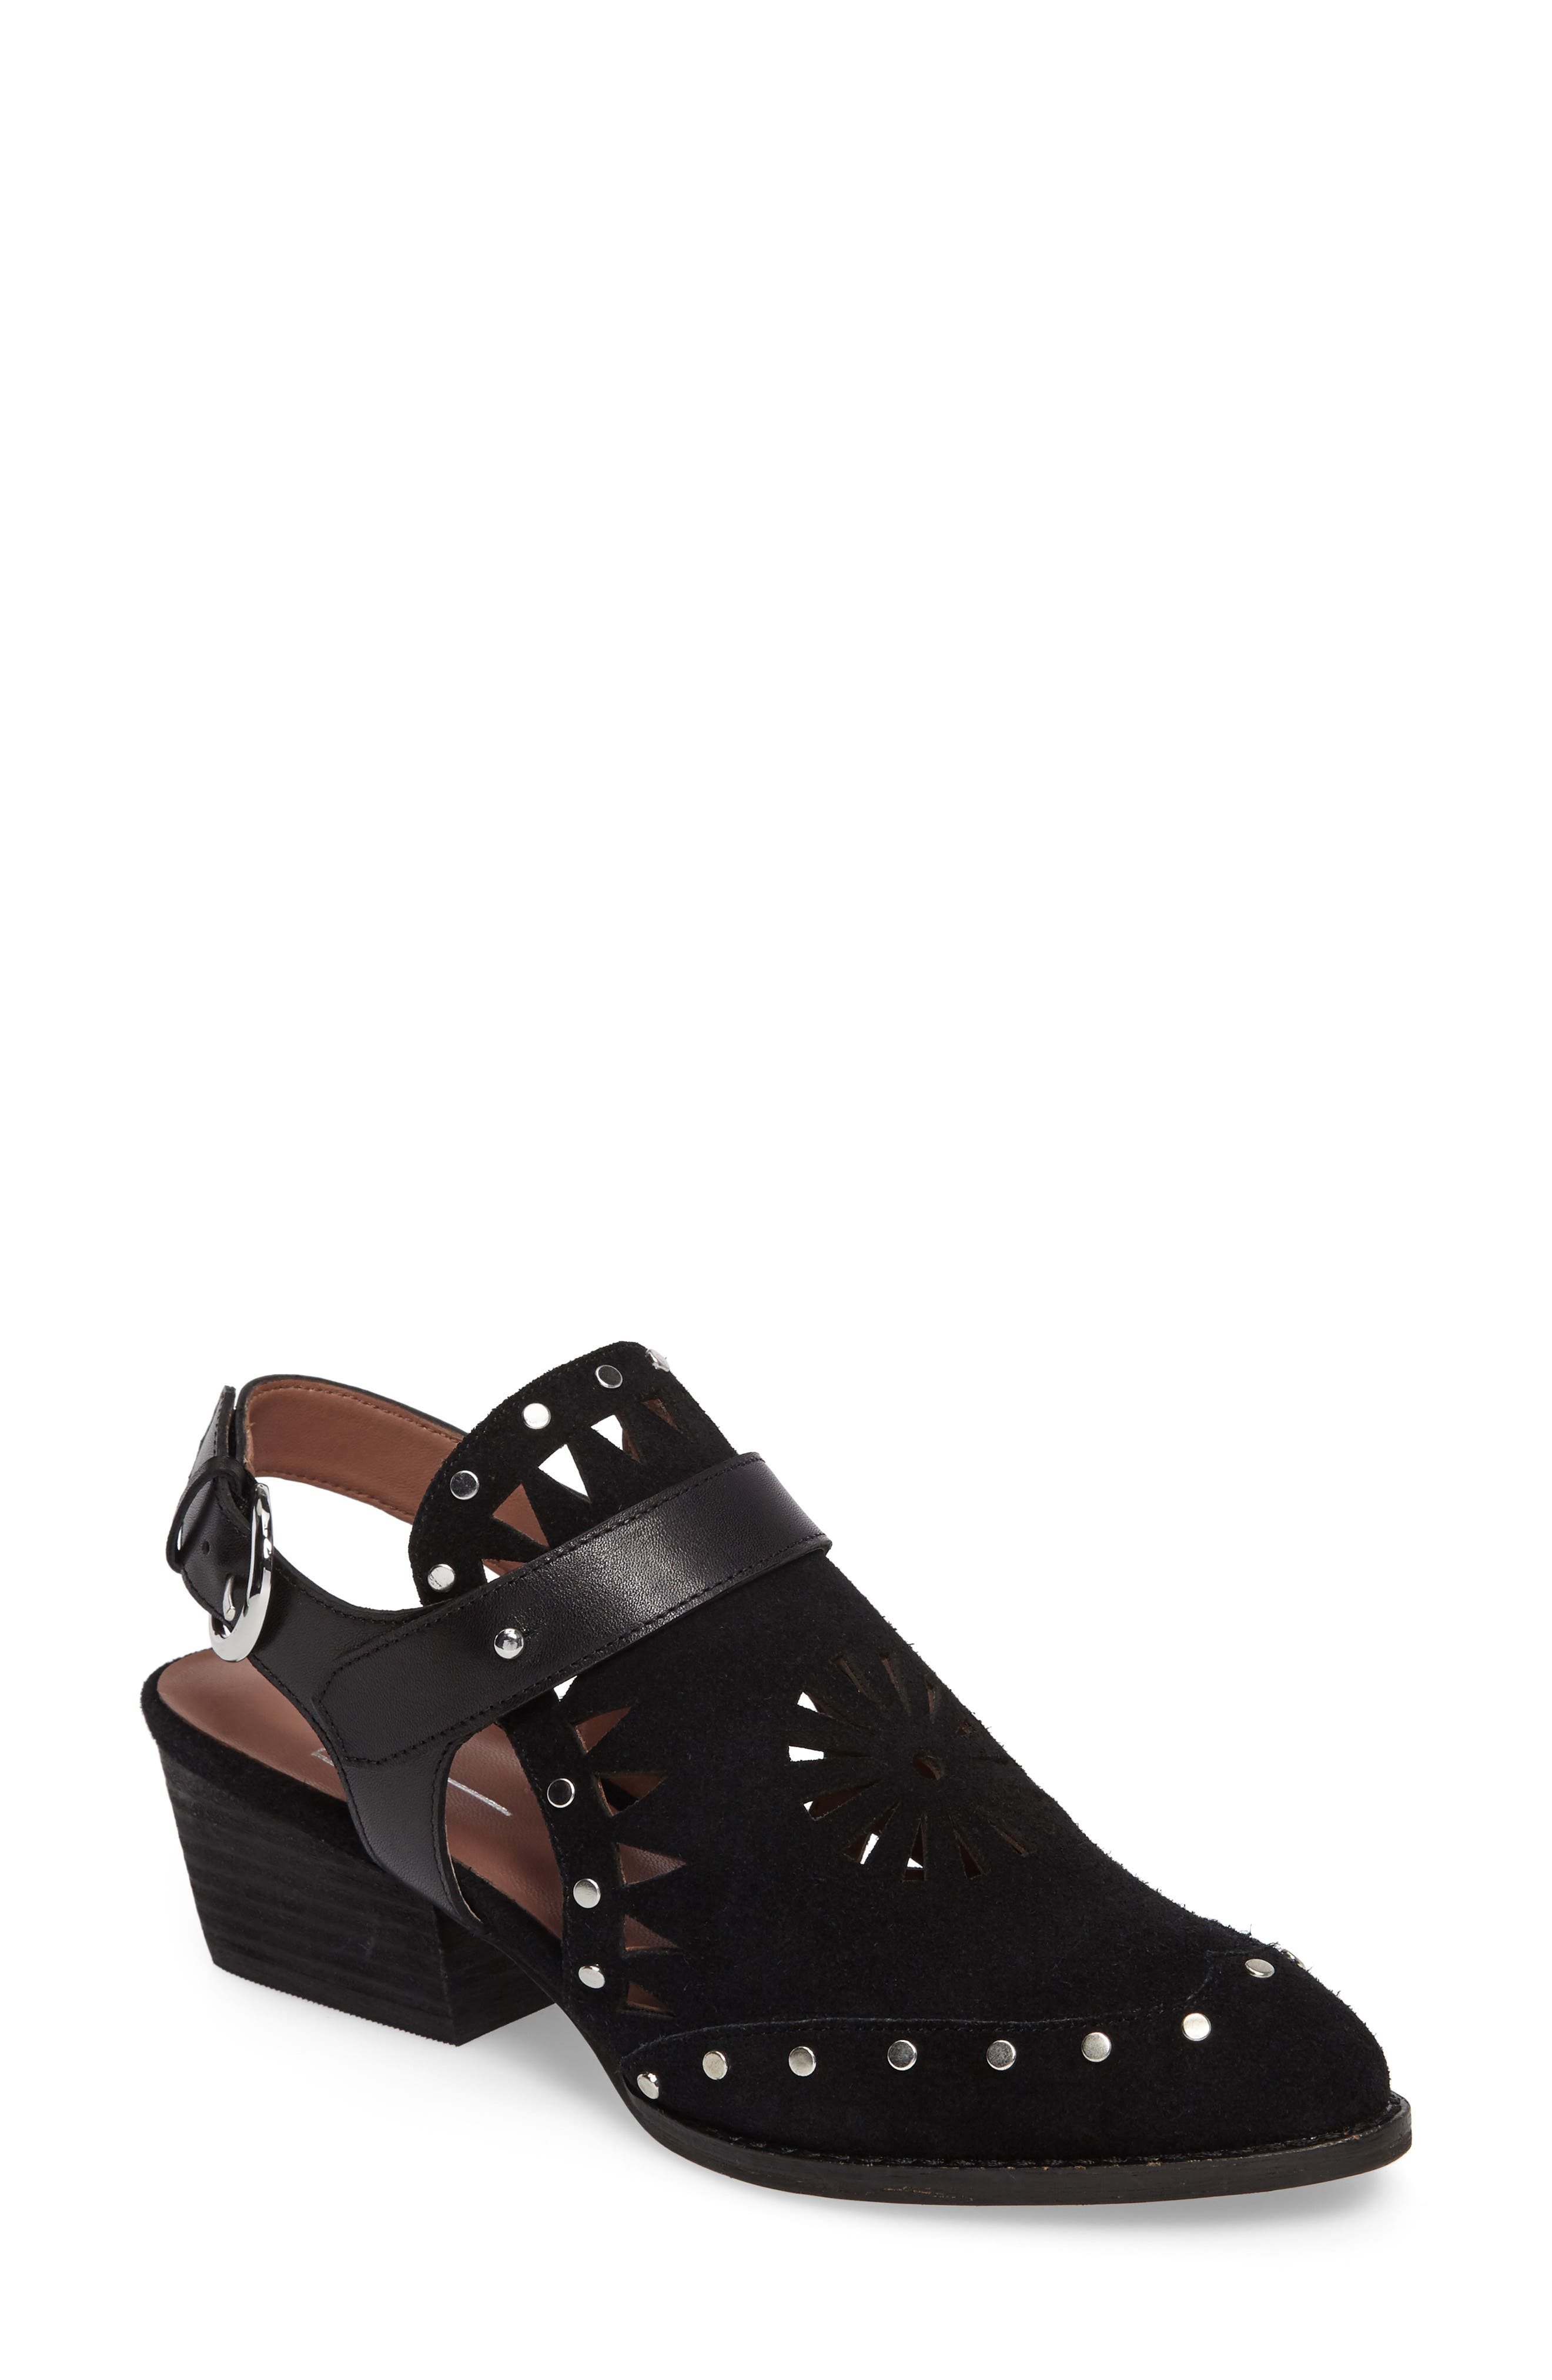 Whitney Bootie,                             Main thumbnail 1, color,                             001